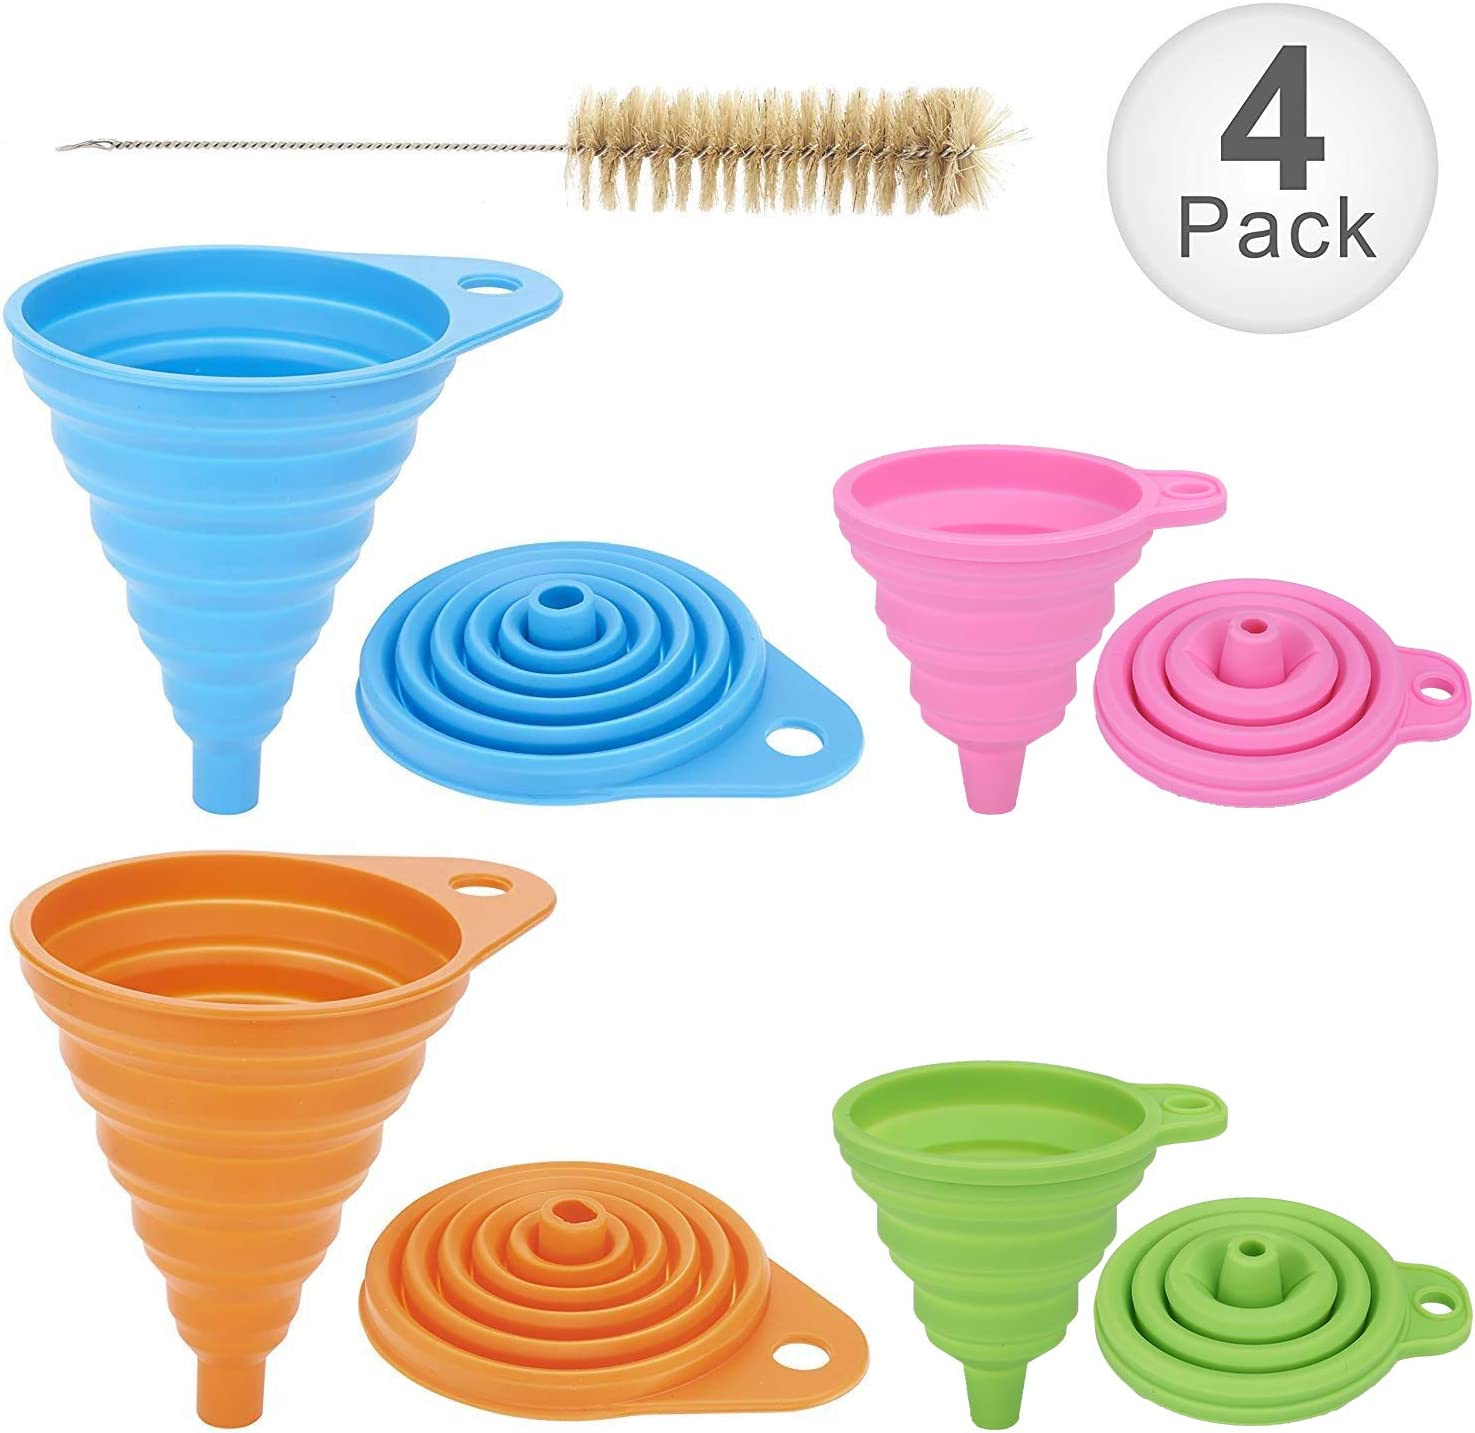 Collapsible Funnel Set of 4 with Bottle Brush, Flexible Silicone Foldable Kitchen Funnel for Liquid/Powder Transfer,100% Food Grade Silicone FDA Approved Silicone Funnel (Large+Small)